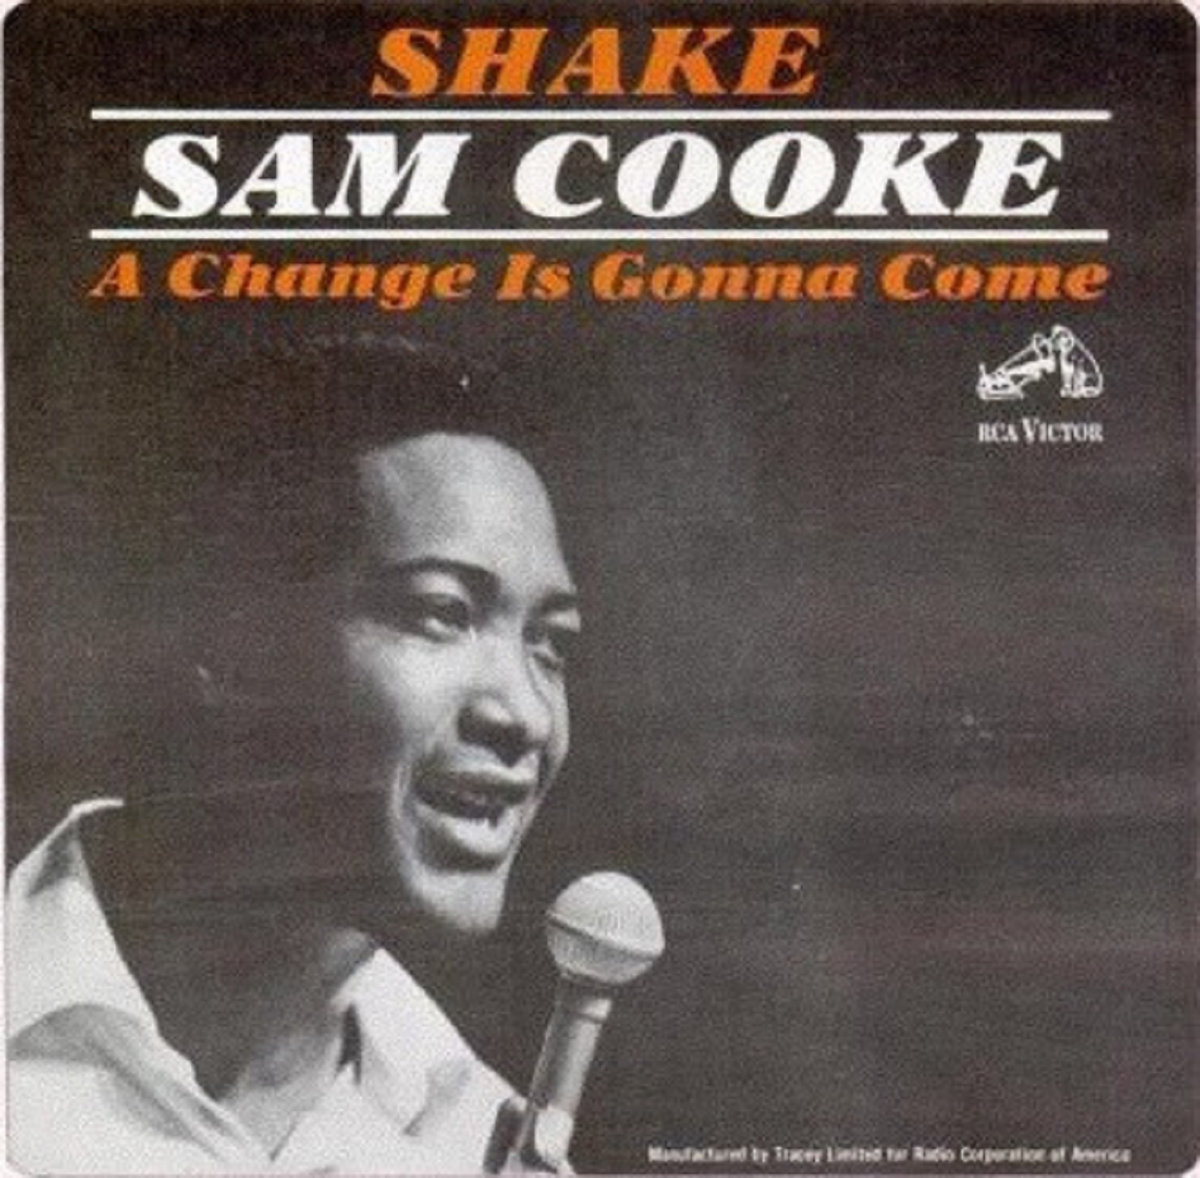 Change Is Gonna Come Sam Cooke Cover Mickey Marshall